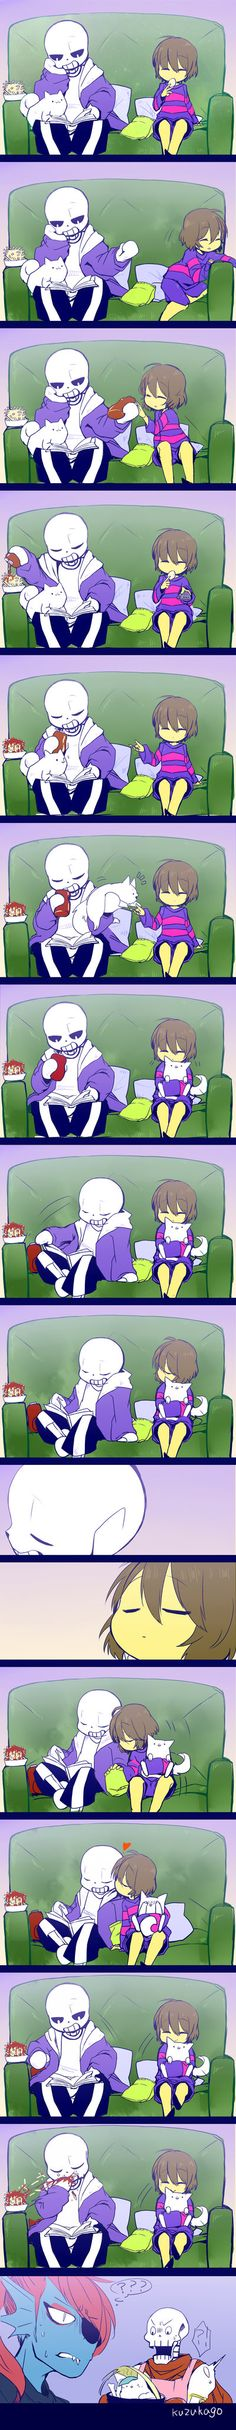 sansxfrisk by kuzukago | They don't need to talk to understand each other